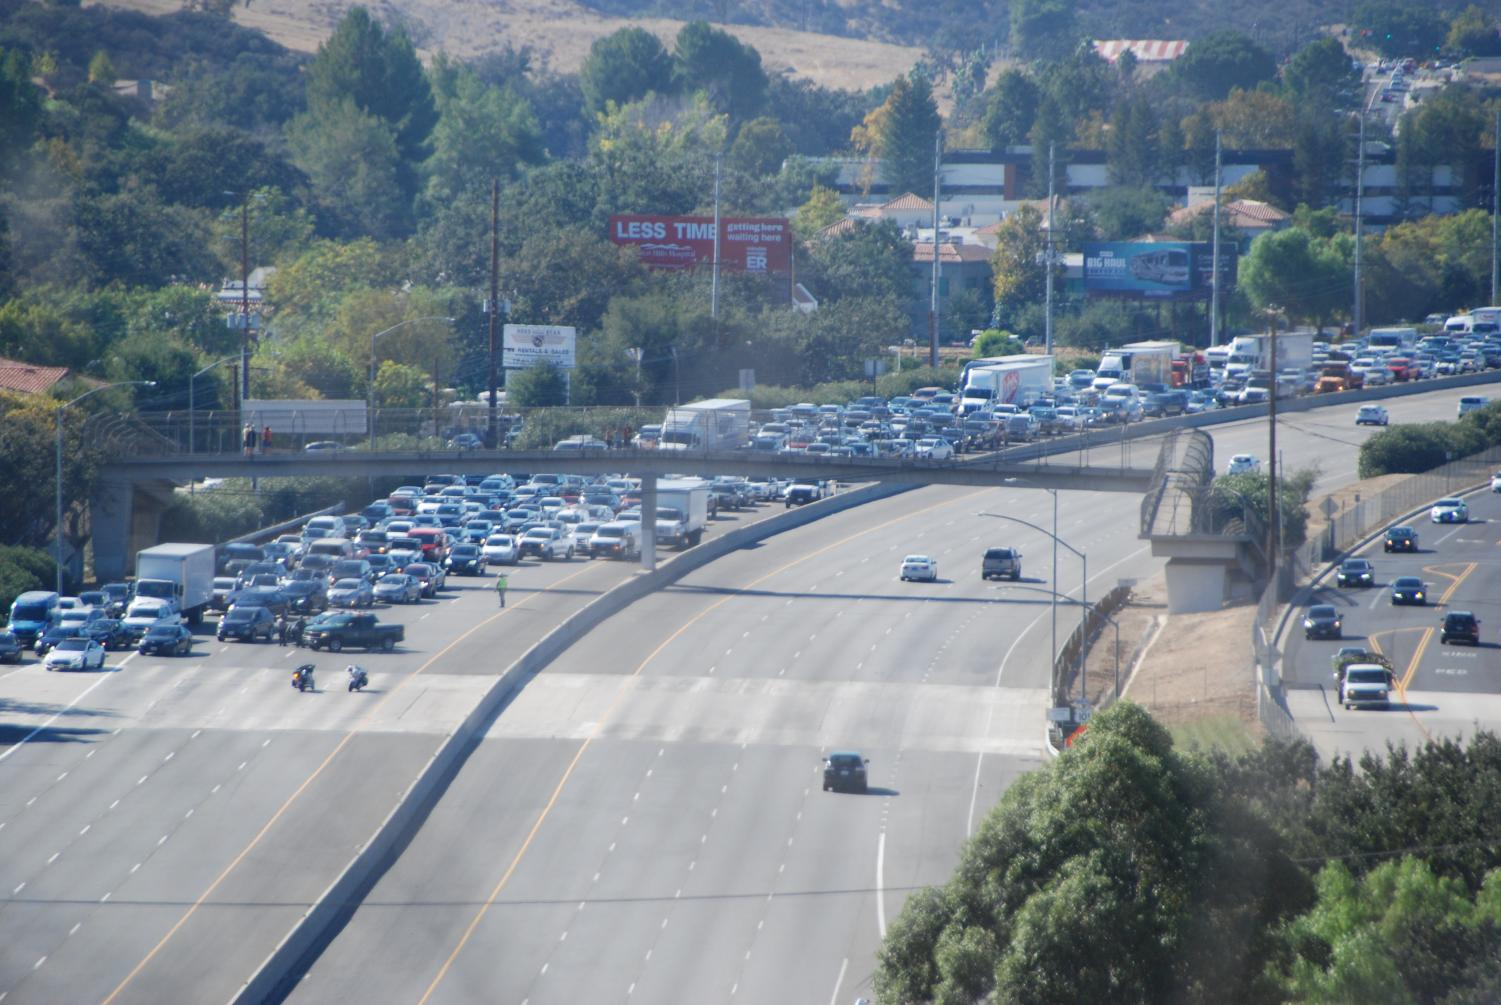 Due to the plane crash on the 101 freeway, many students were forced to wait until the traffic cleared for their parents to arrive and were offered pizza by the school